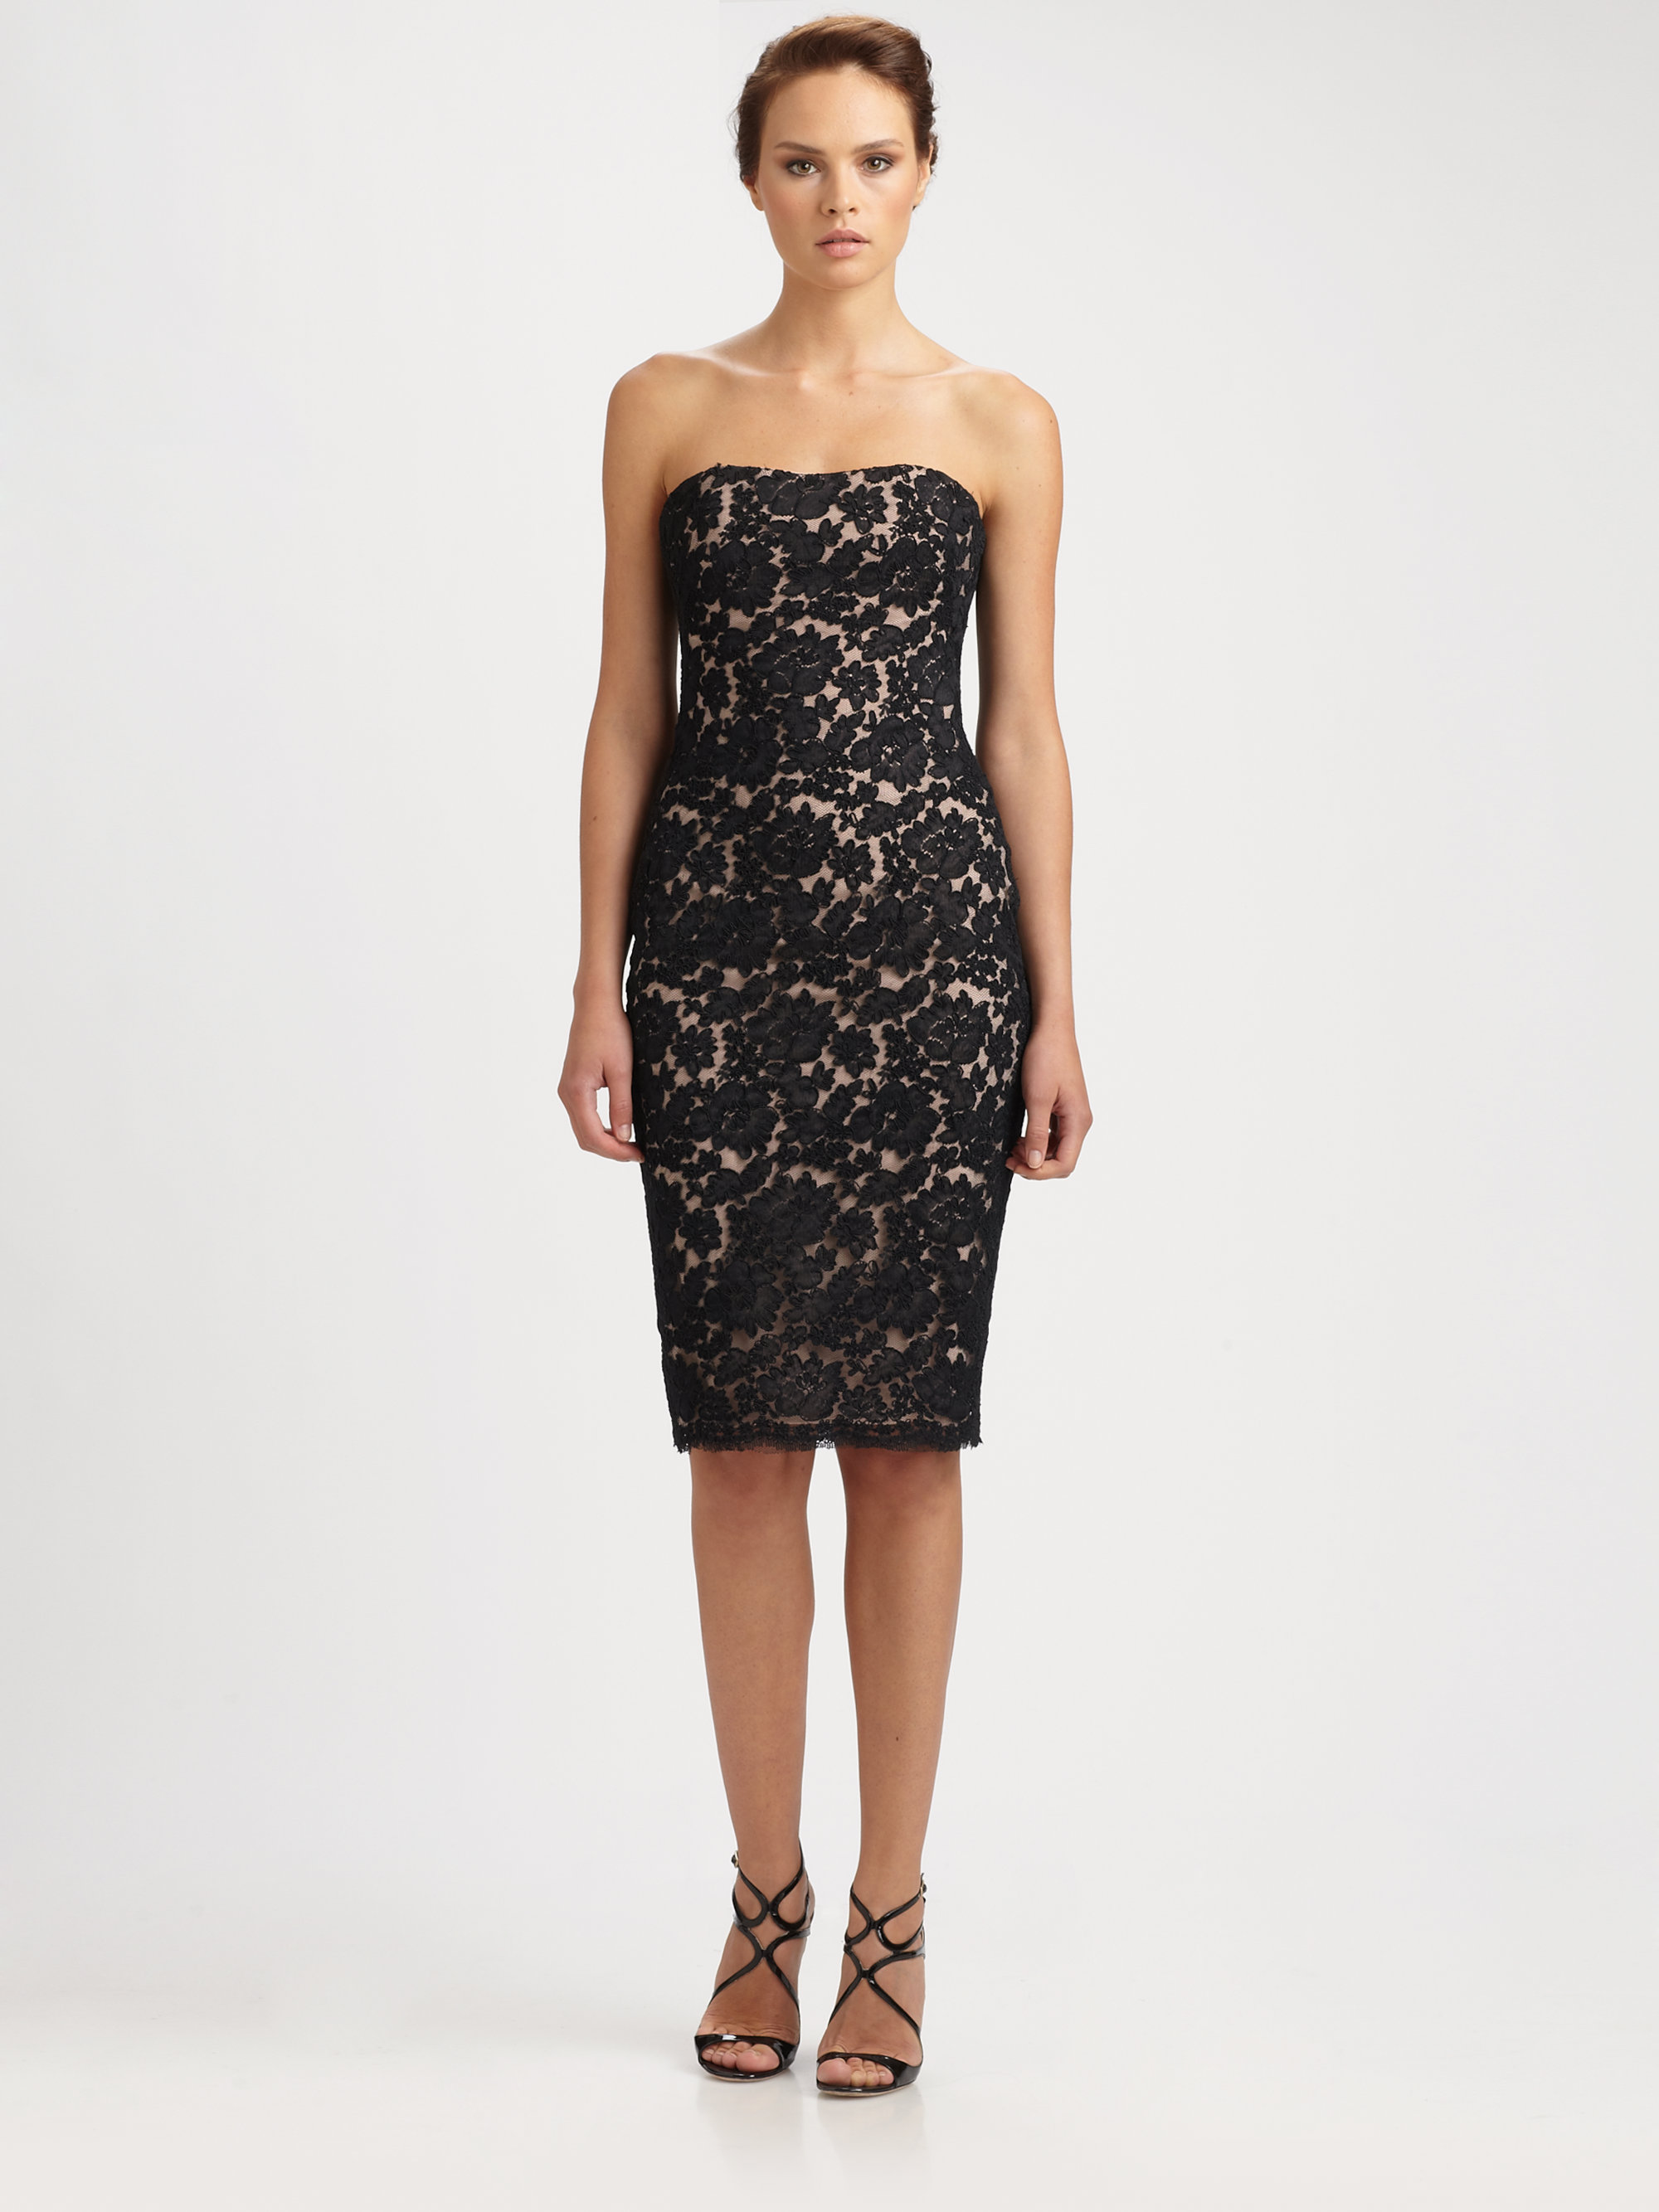 Notte by marchesa Strapless Lace Cocktail Dress in Black | Lyst